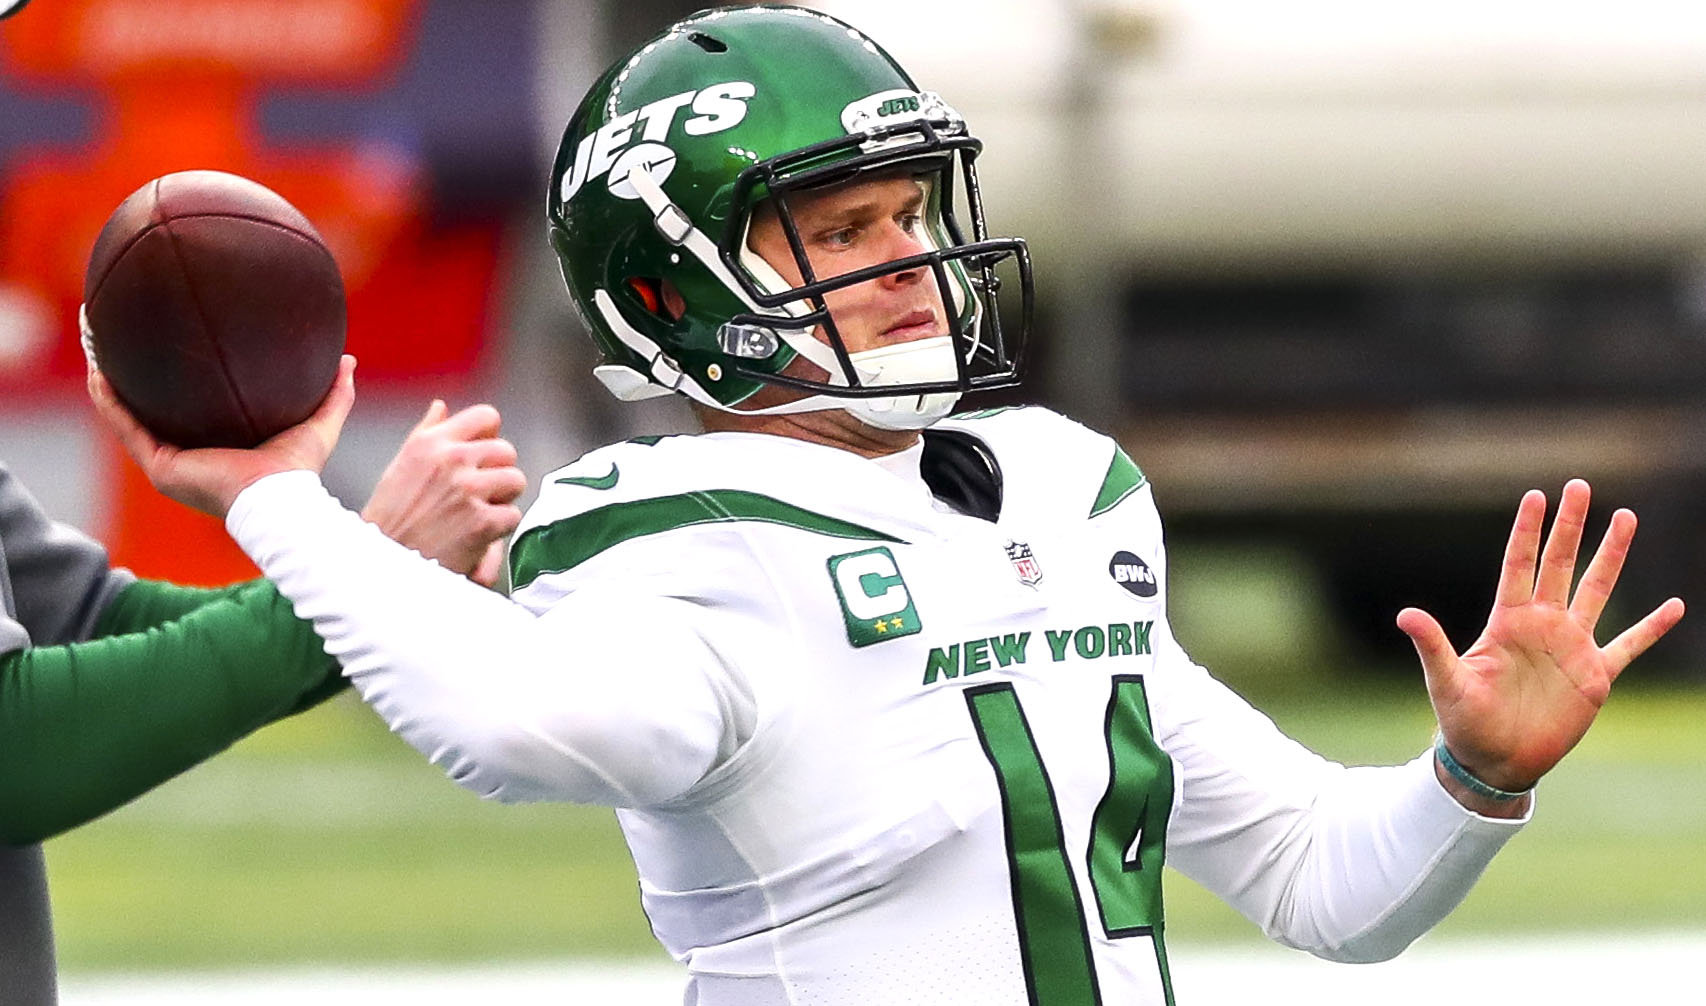 Sam Darnold found positives out of miserable Jets season